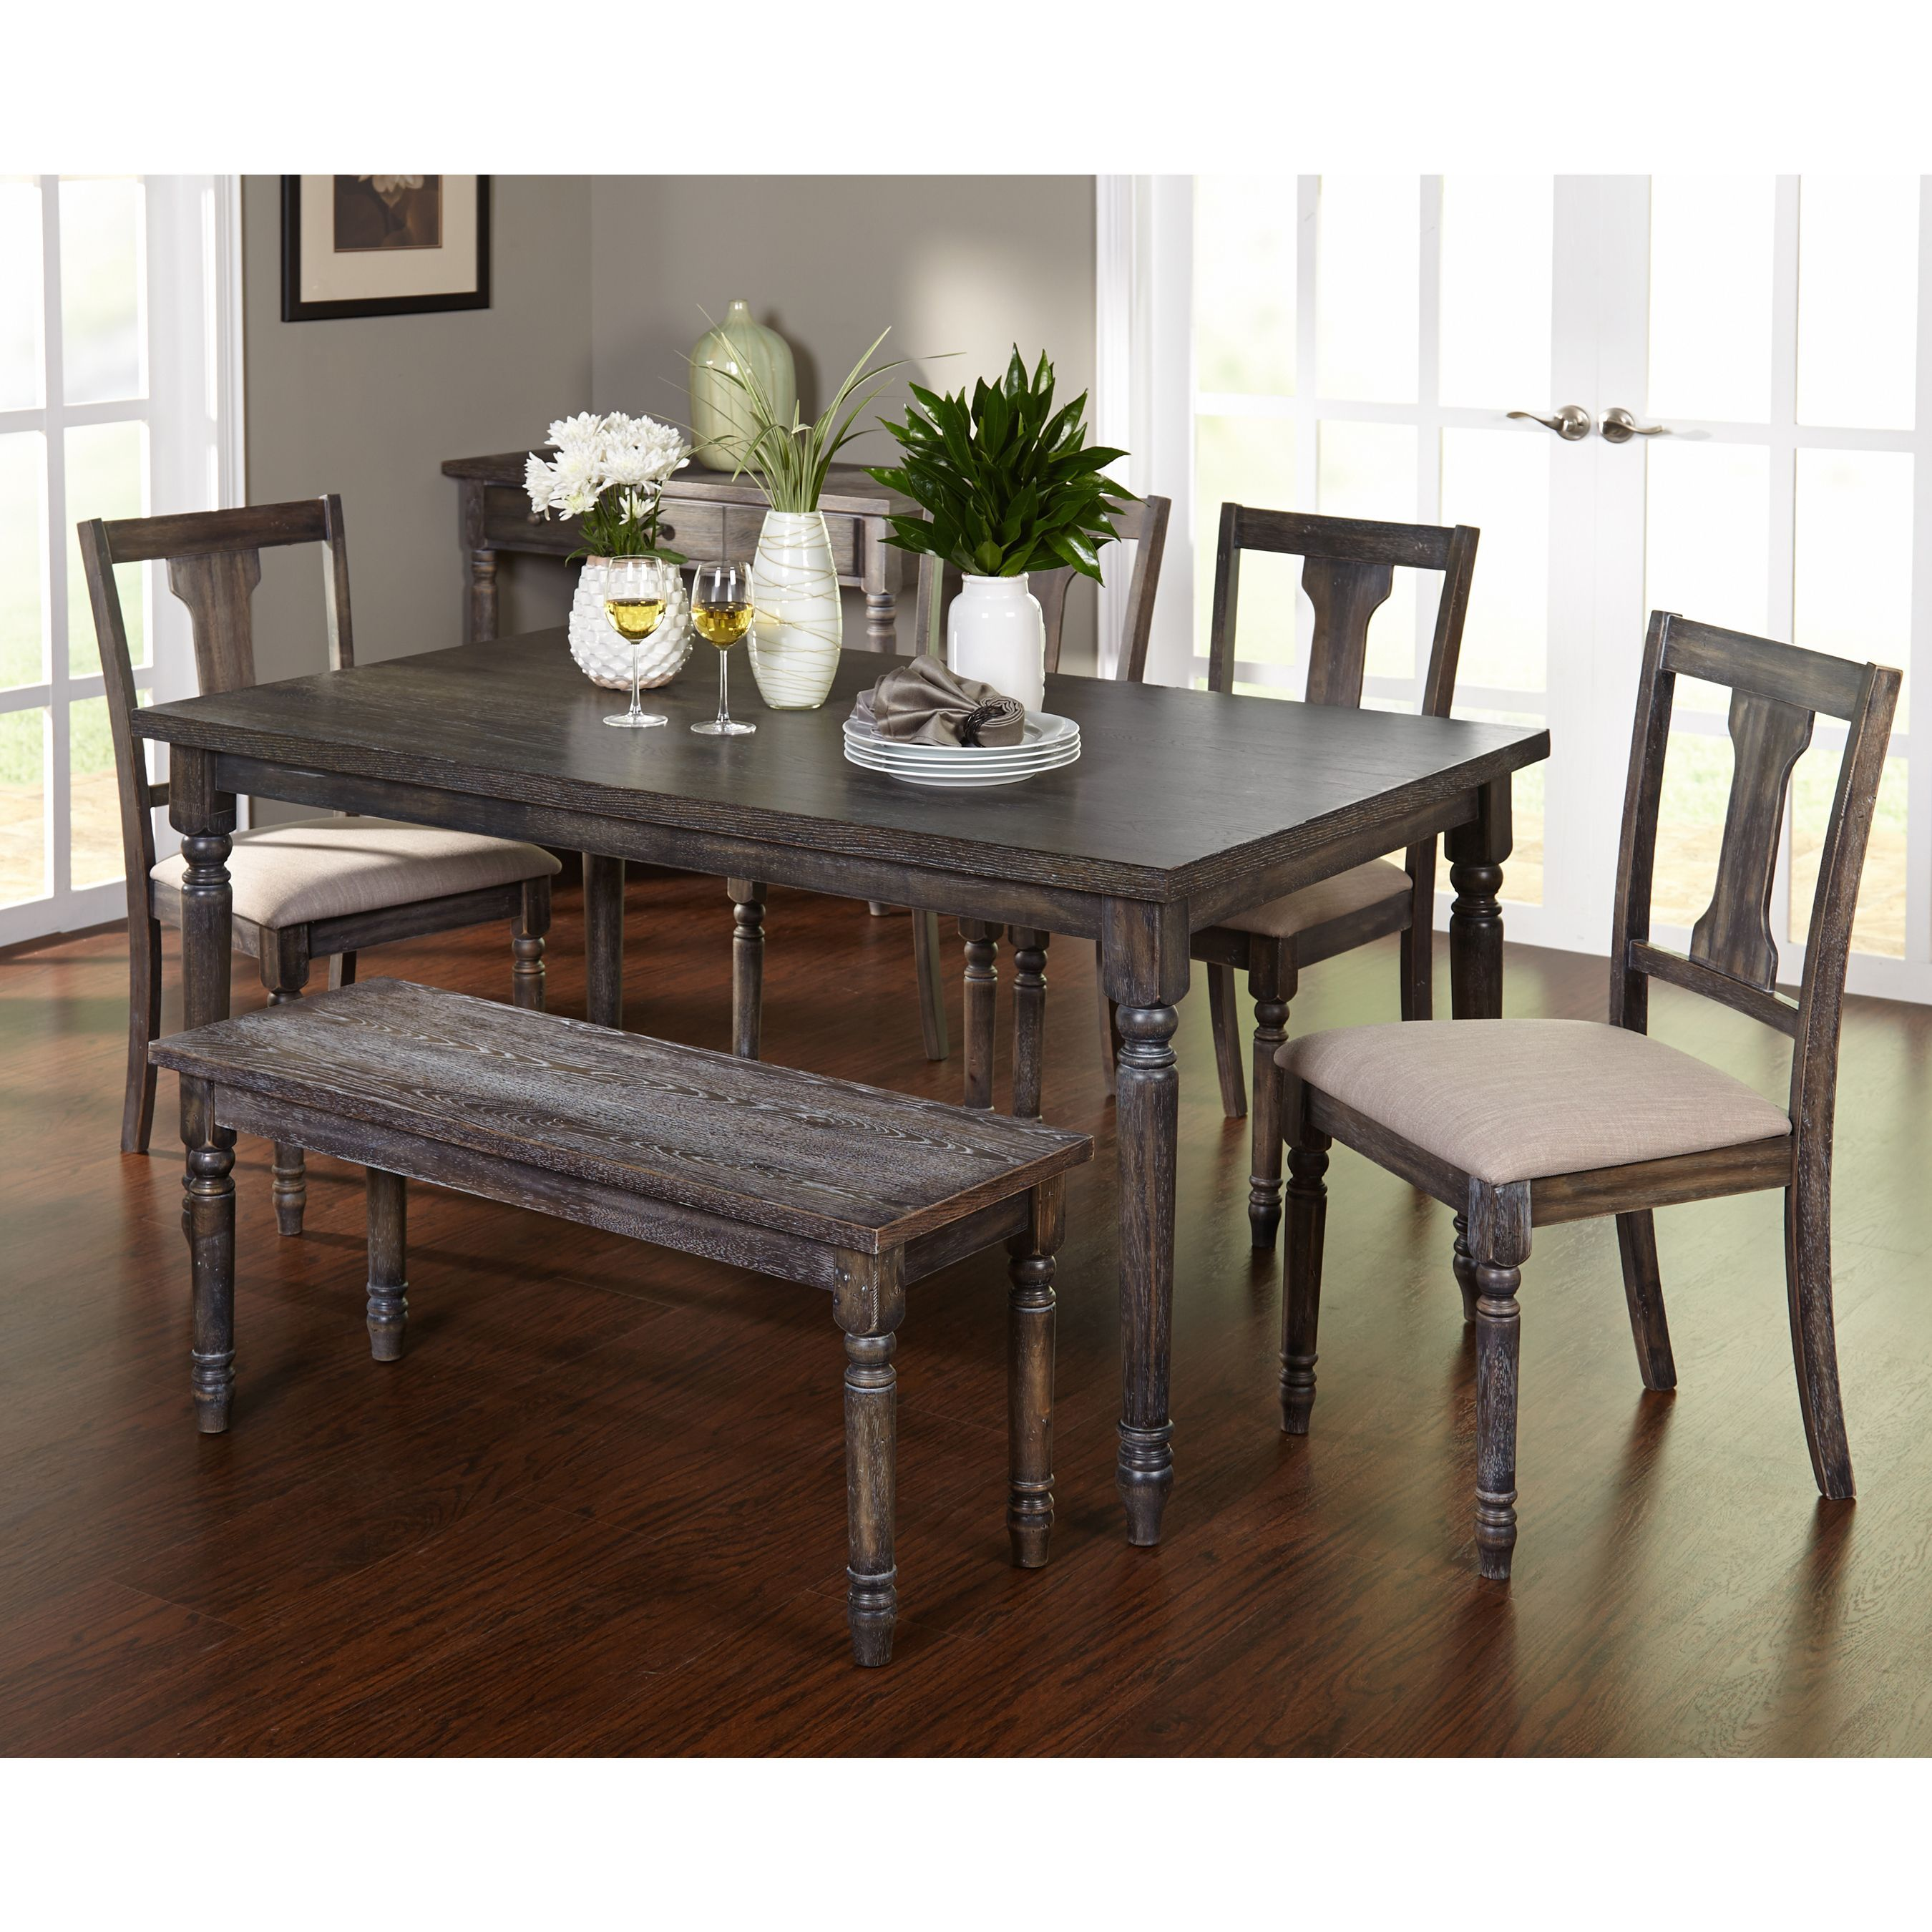 Barish 6-piece Burntwood Dining Set with Bench | Products | Dining on granite dining table with bench, kitchen bench style tables, pub table with bench, kitchen dinette sets, kitchen table bench booth, kitchen table set rustic, kitchen bench set furniture, kitchen chairs with bench, small dining table with bench, kitchen table plans, kitchen bench table seat set, oval table set with bench, kitchen corner bench, drop leaf table with bench, kitchen table and chairs sets,